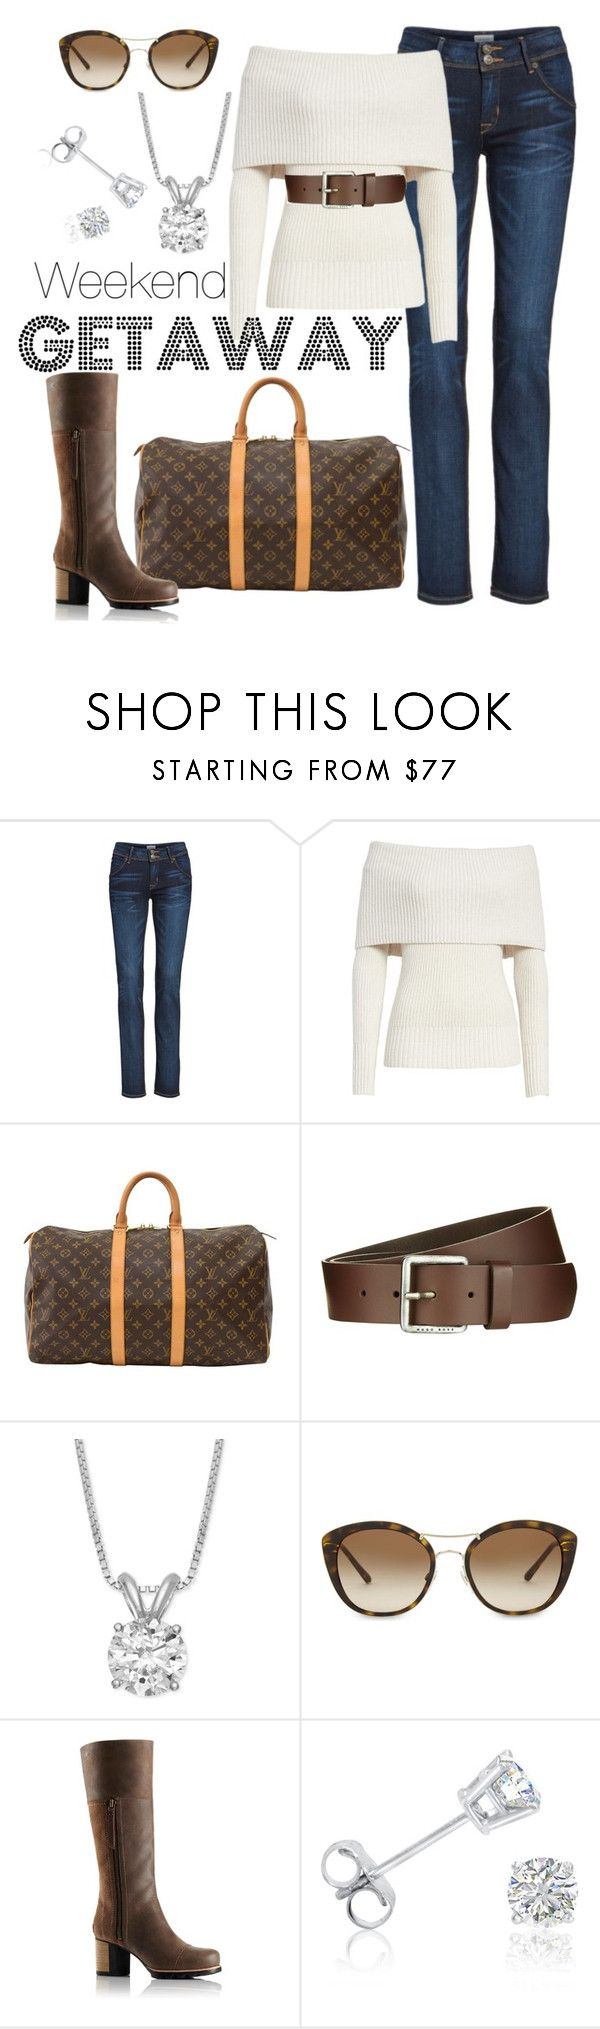 """#31"" by chris-boyce ❤ liked on Polyvore featuring Hudson Jeans, Rebecca Taylor, Louis Vuitton, BOSS Orange, Burberry, SOREL, Amanda Rose Collection, Boots and weekendgetaway"